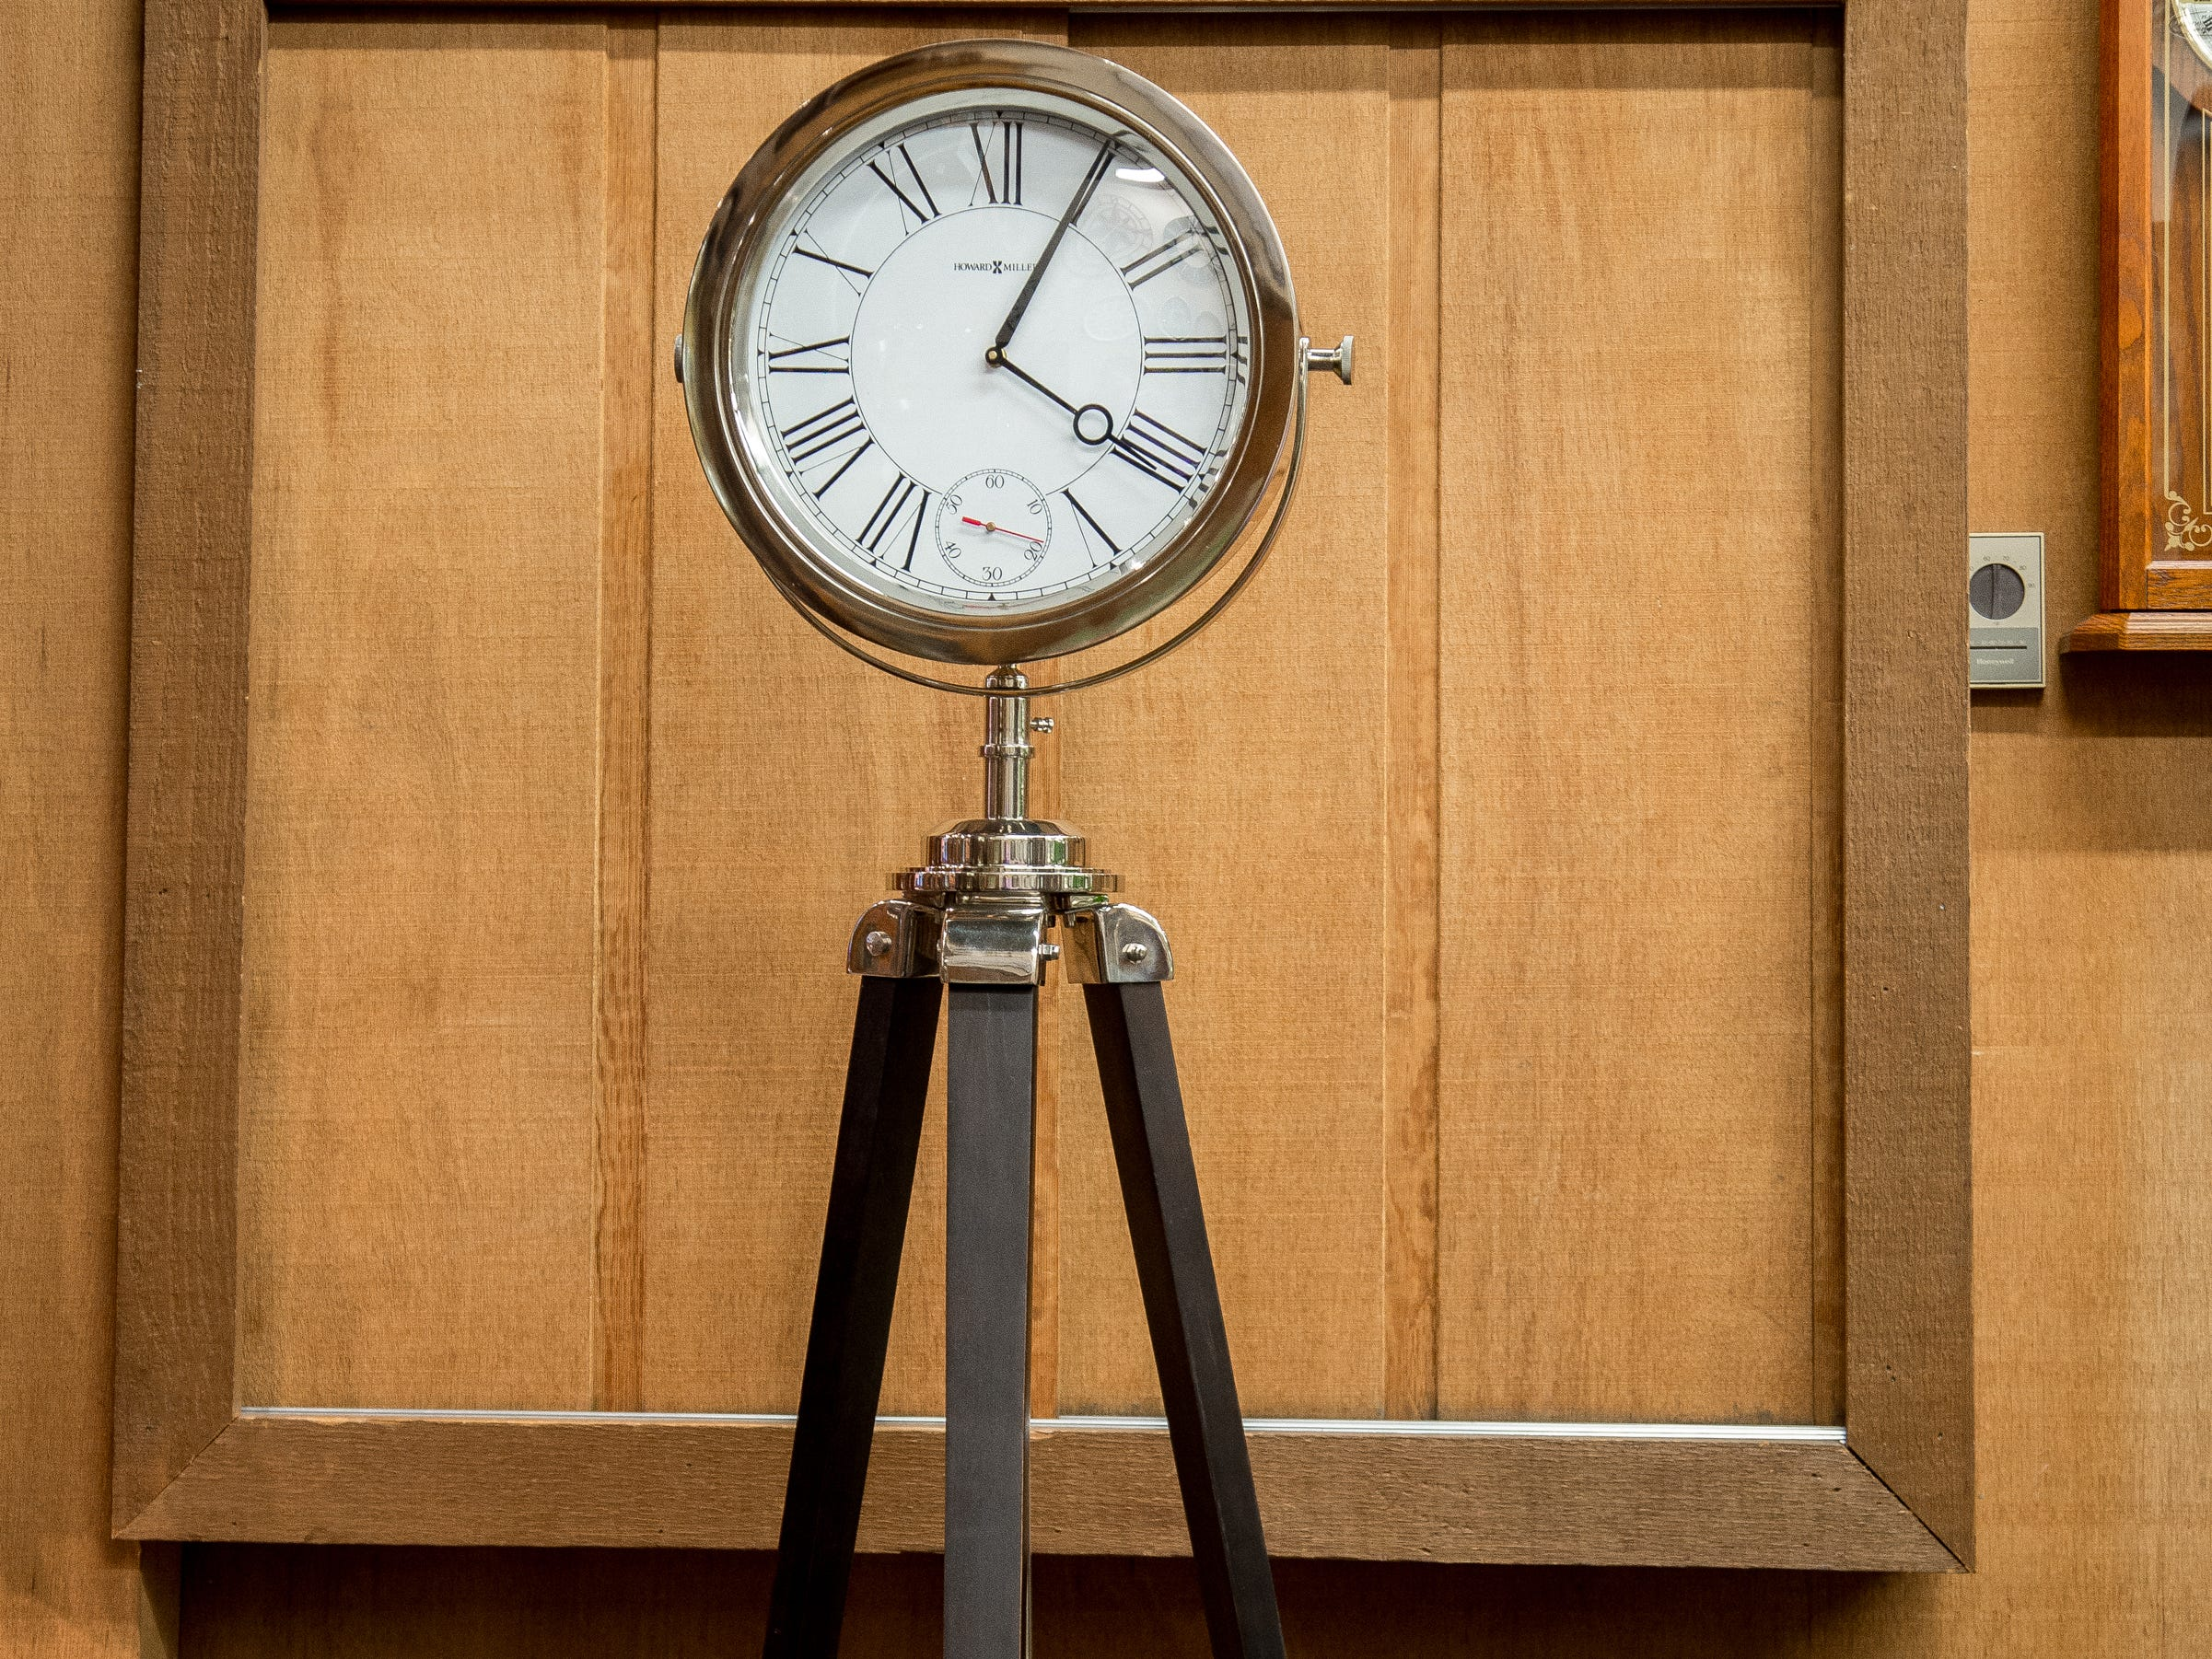 This tripod surveyor-style clock is 71 inches tall and priced at $599 (Little Swiss Clock Shop).